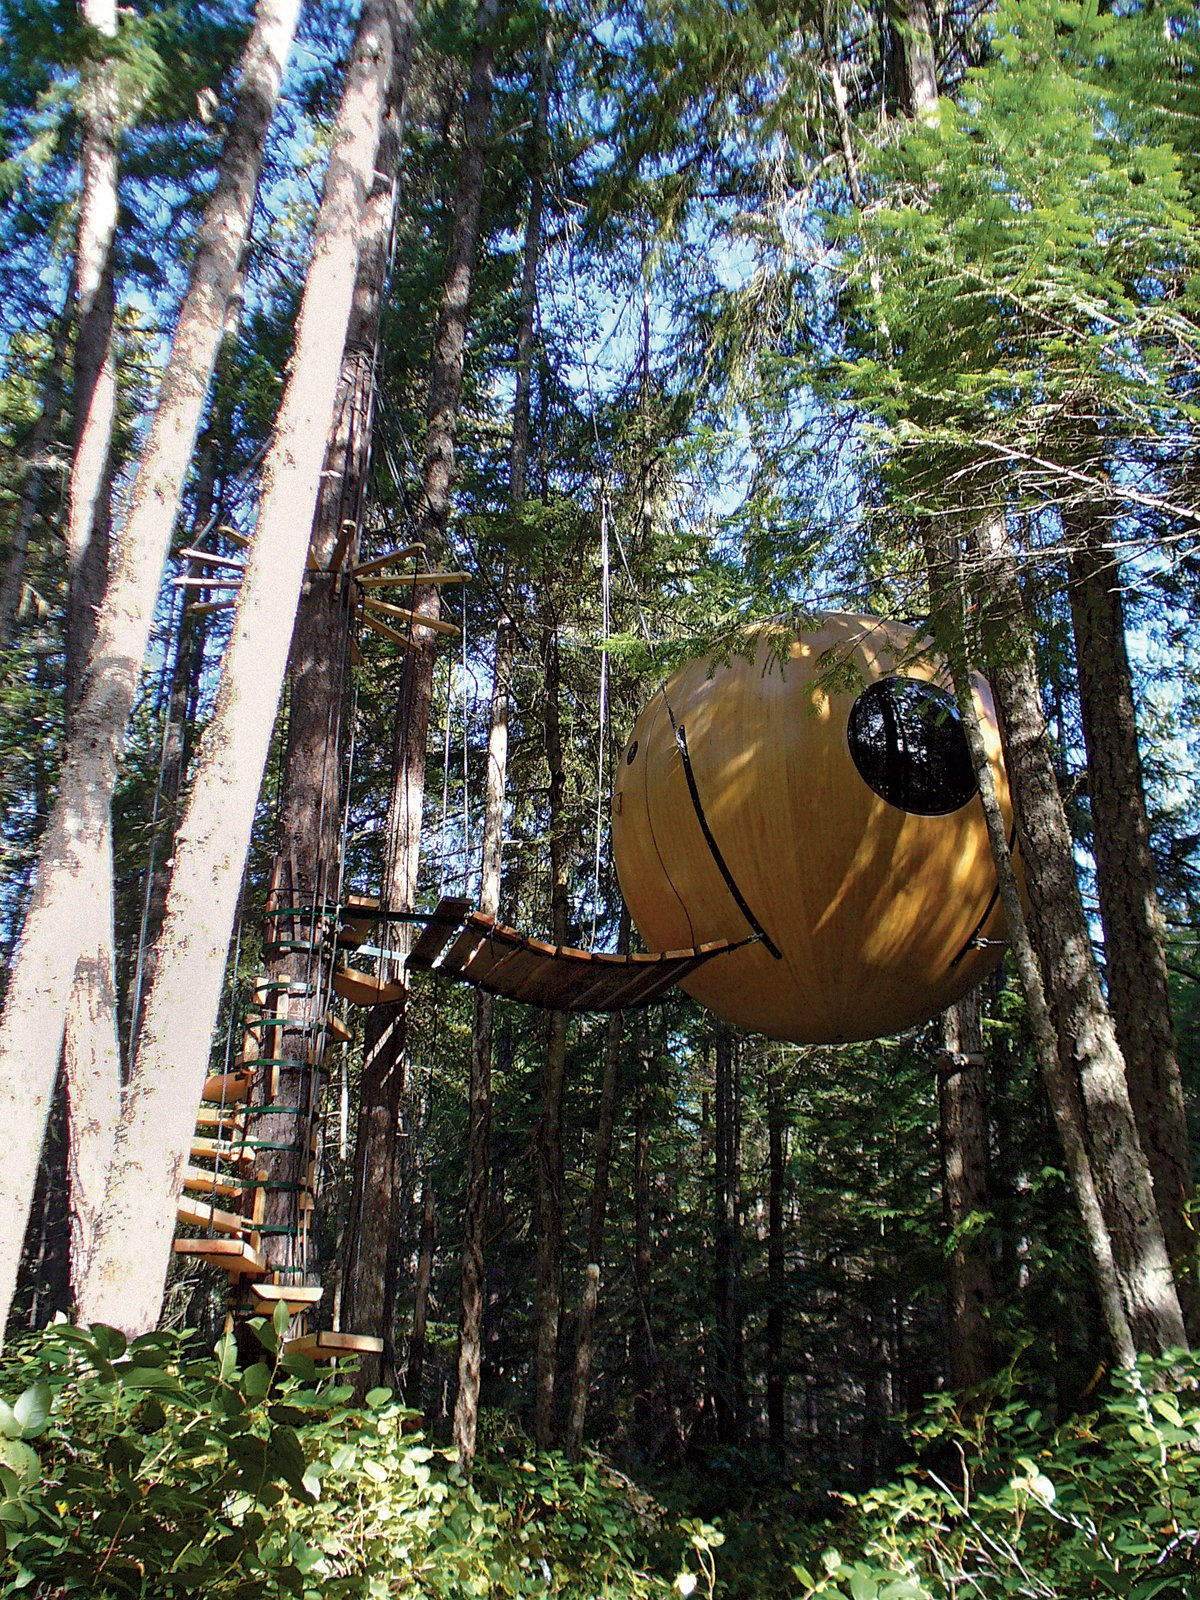 """British Columbia–based Tom Chudleigh designed the Free Spirit Sphere as a have-your-cake-and-eat-it-too tree house that combines the wonder of being airborne with all manner of earthly comforts.  Handcrafted of wood or fiberglass, this lavish ten-foot-six-inch-diameter sphere is fully wired to accommodate a microwave, space heater, refrigerator, TV, Clapper—whatever. And it's plumbed for a kitchen sink. Retractable beds sleep up to four people.   But if the point is to surround one's self with all mod cons, why not just rent a condo in Barstow? """"When you're up in the trees,"""" Chudleigh says, somewhat evasively, """"you really get the sense that you are just floating up there, that you're in a different world."""" This sensation is produced by four flexible ropes that connect to the sides of the sphere, allowing it to suspend freely above the ground and move with the whim of the forest breeze or branches, intimately connecting the Free Spirit Sphere occupant with the surroundings. """"It's a really healing place up here.""""   Chudleigh has built four spheres so far and is on his way to Australia to build four more. Prices range from $45,000 for the fiberglass to $150,000 for the handcrafted wood sphere. """"You think of conventional buildings as having walls, straight lines, color patterns,"""" says Chudleigh. """"In these spheres you are completely removed from that: All walls are merged into one, you are in the air, connected to it, detached from everything familiar—it's a total escape from the conventional world.""""  br>  br>  Photograph by Gregor MacLean.  Photo 10 of 25 in Photo Essay: Enchanting Tree Houses from The High Life"""